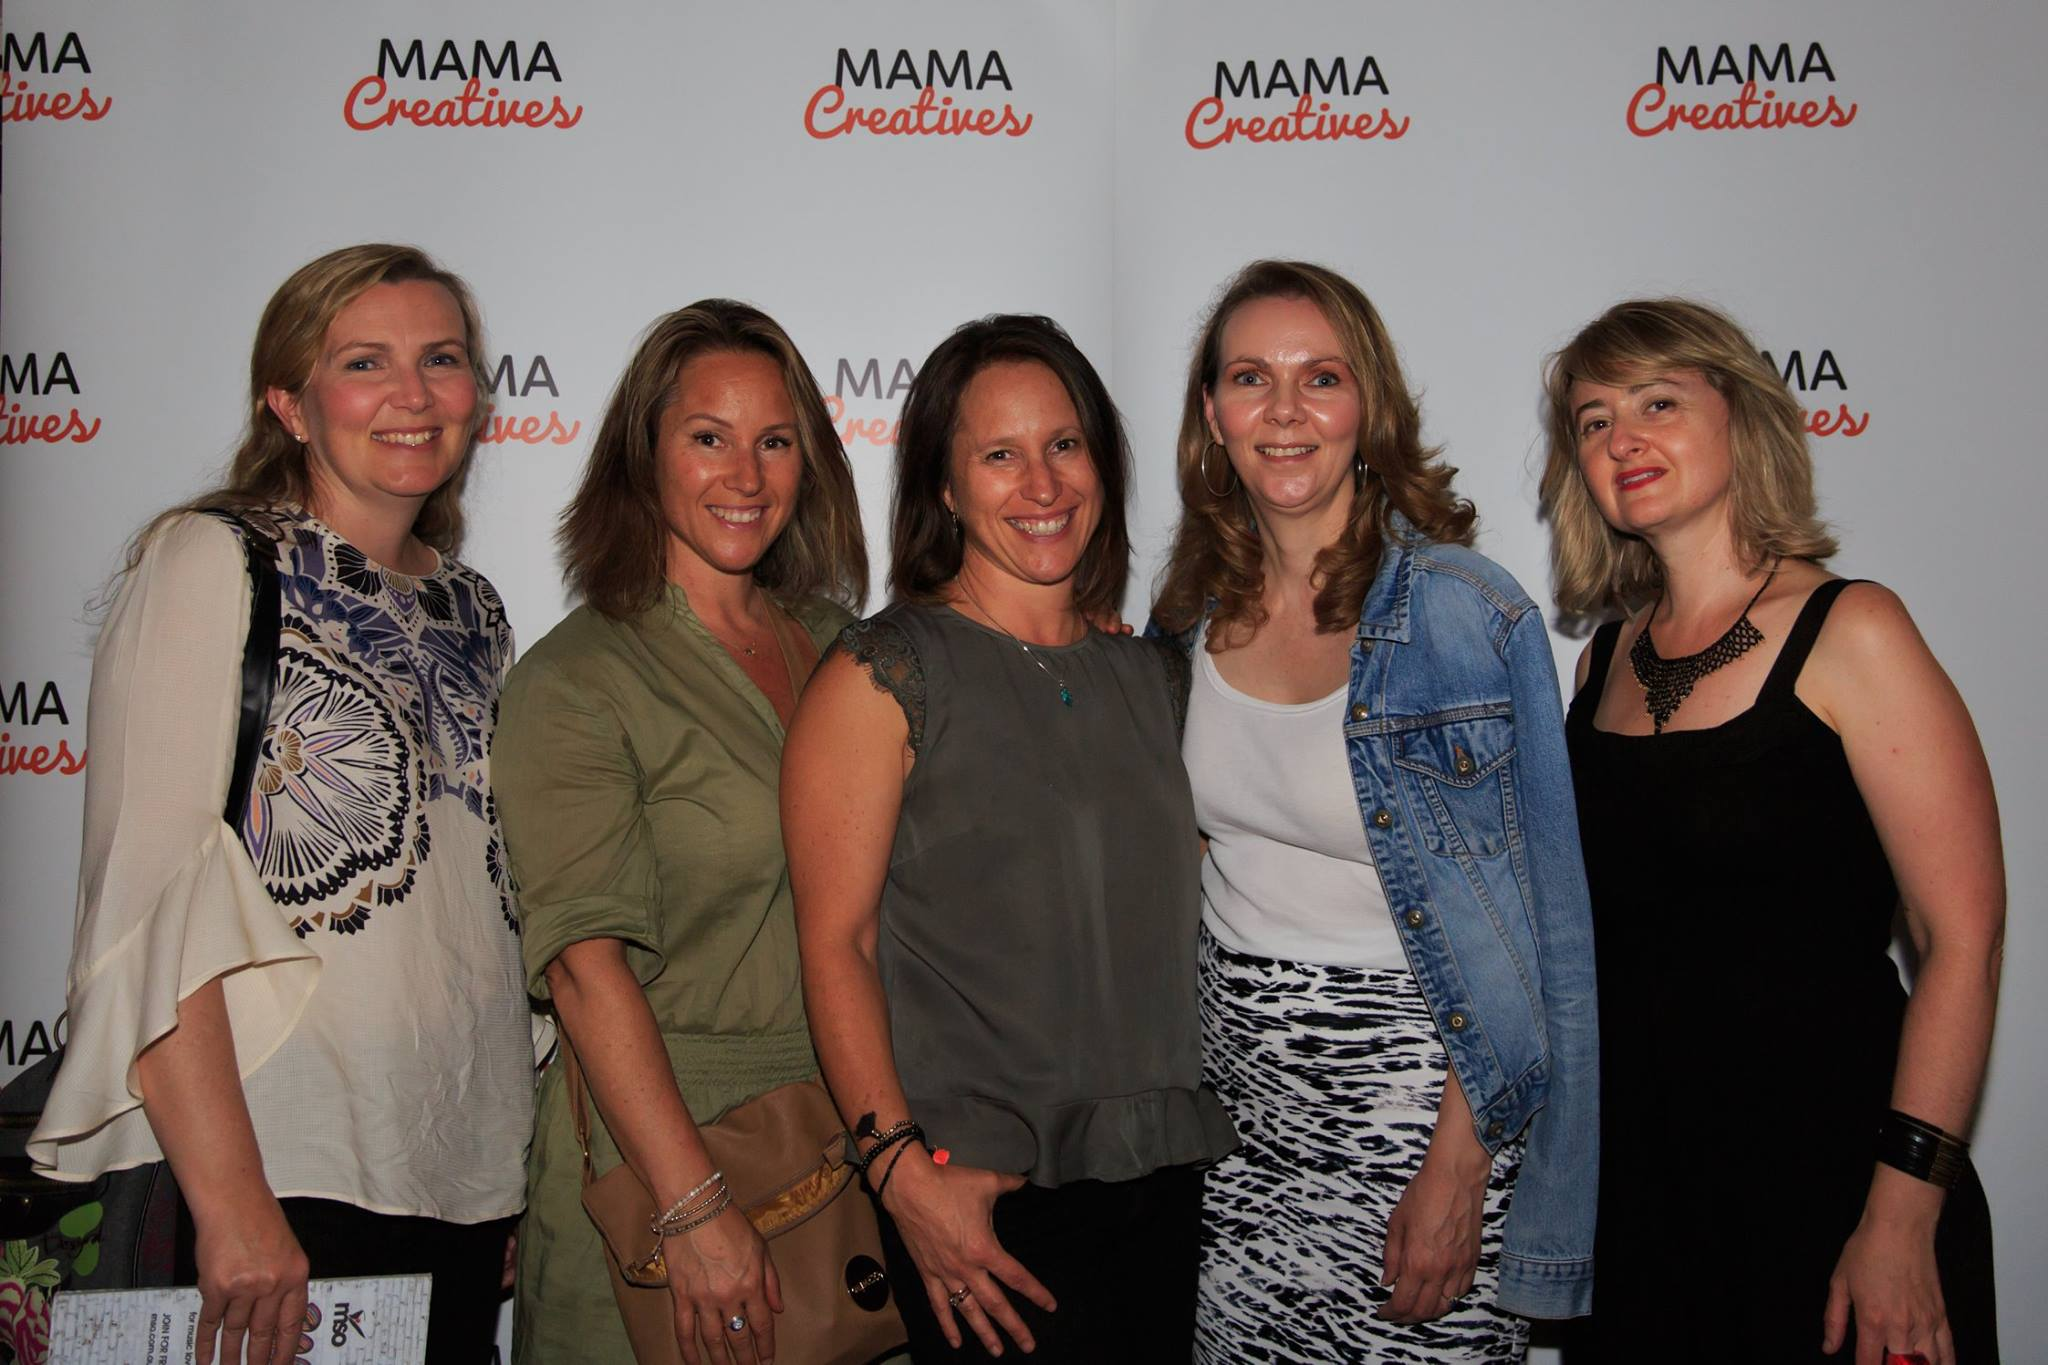 With beautiful creative friends from high school! At the Mama Creatives Story Slam finale event for 2017.